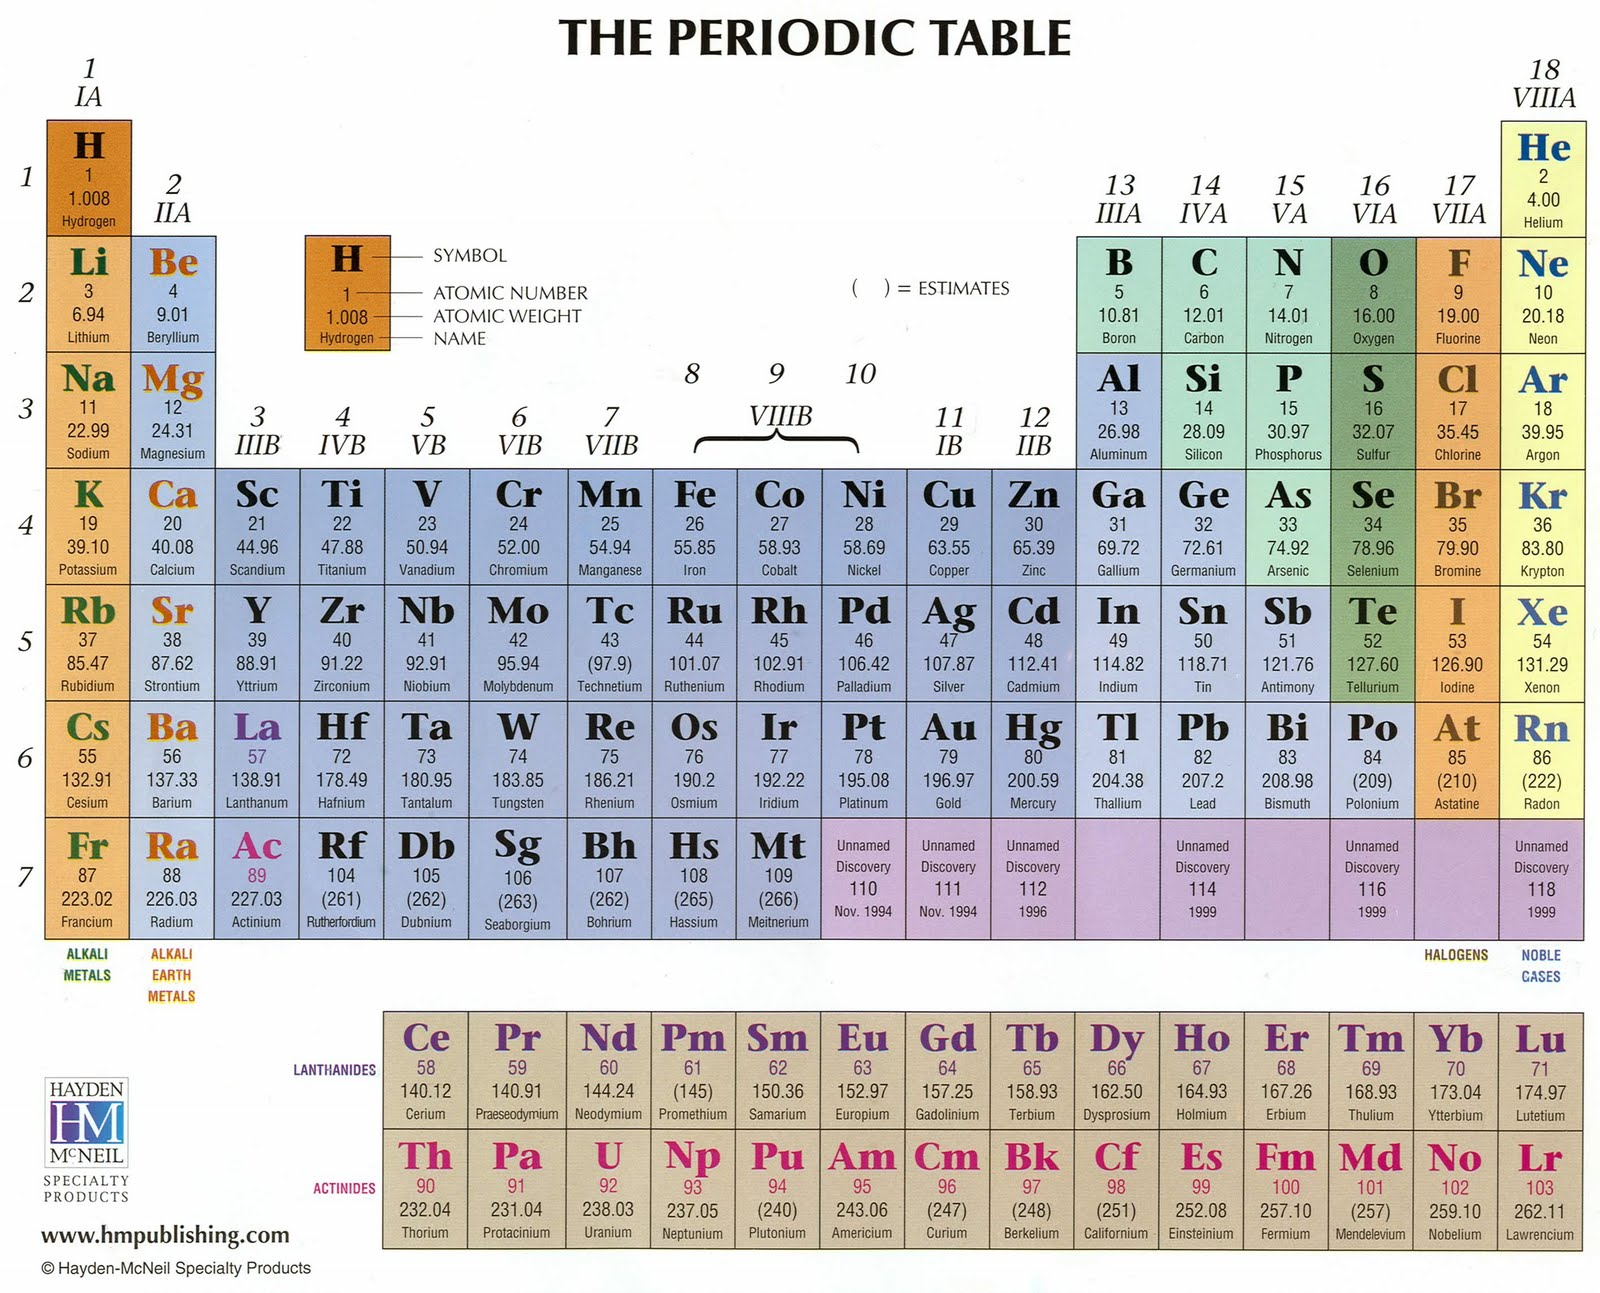 Raji chem world the periodic table history of its arrangement source http3rd1000 gamestrikefo Choice Image